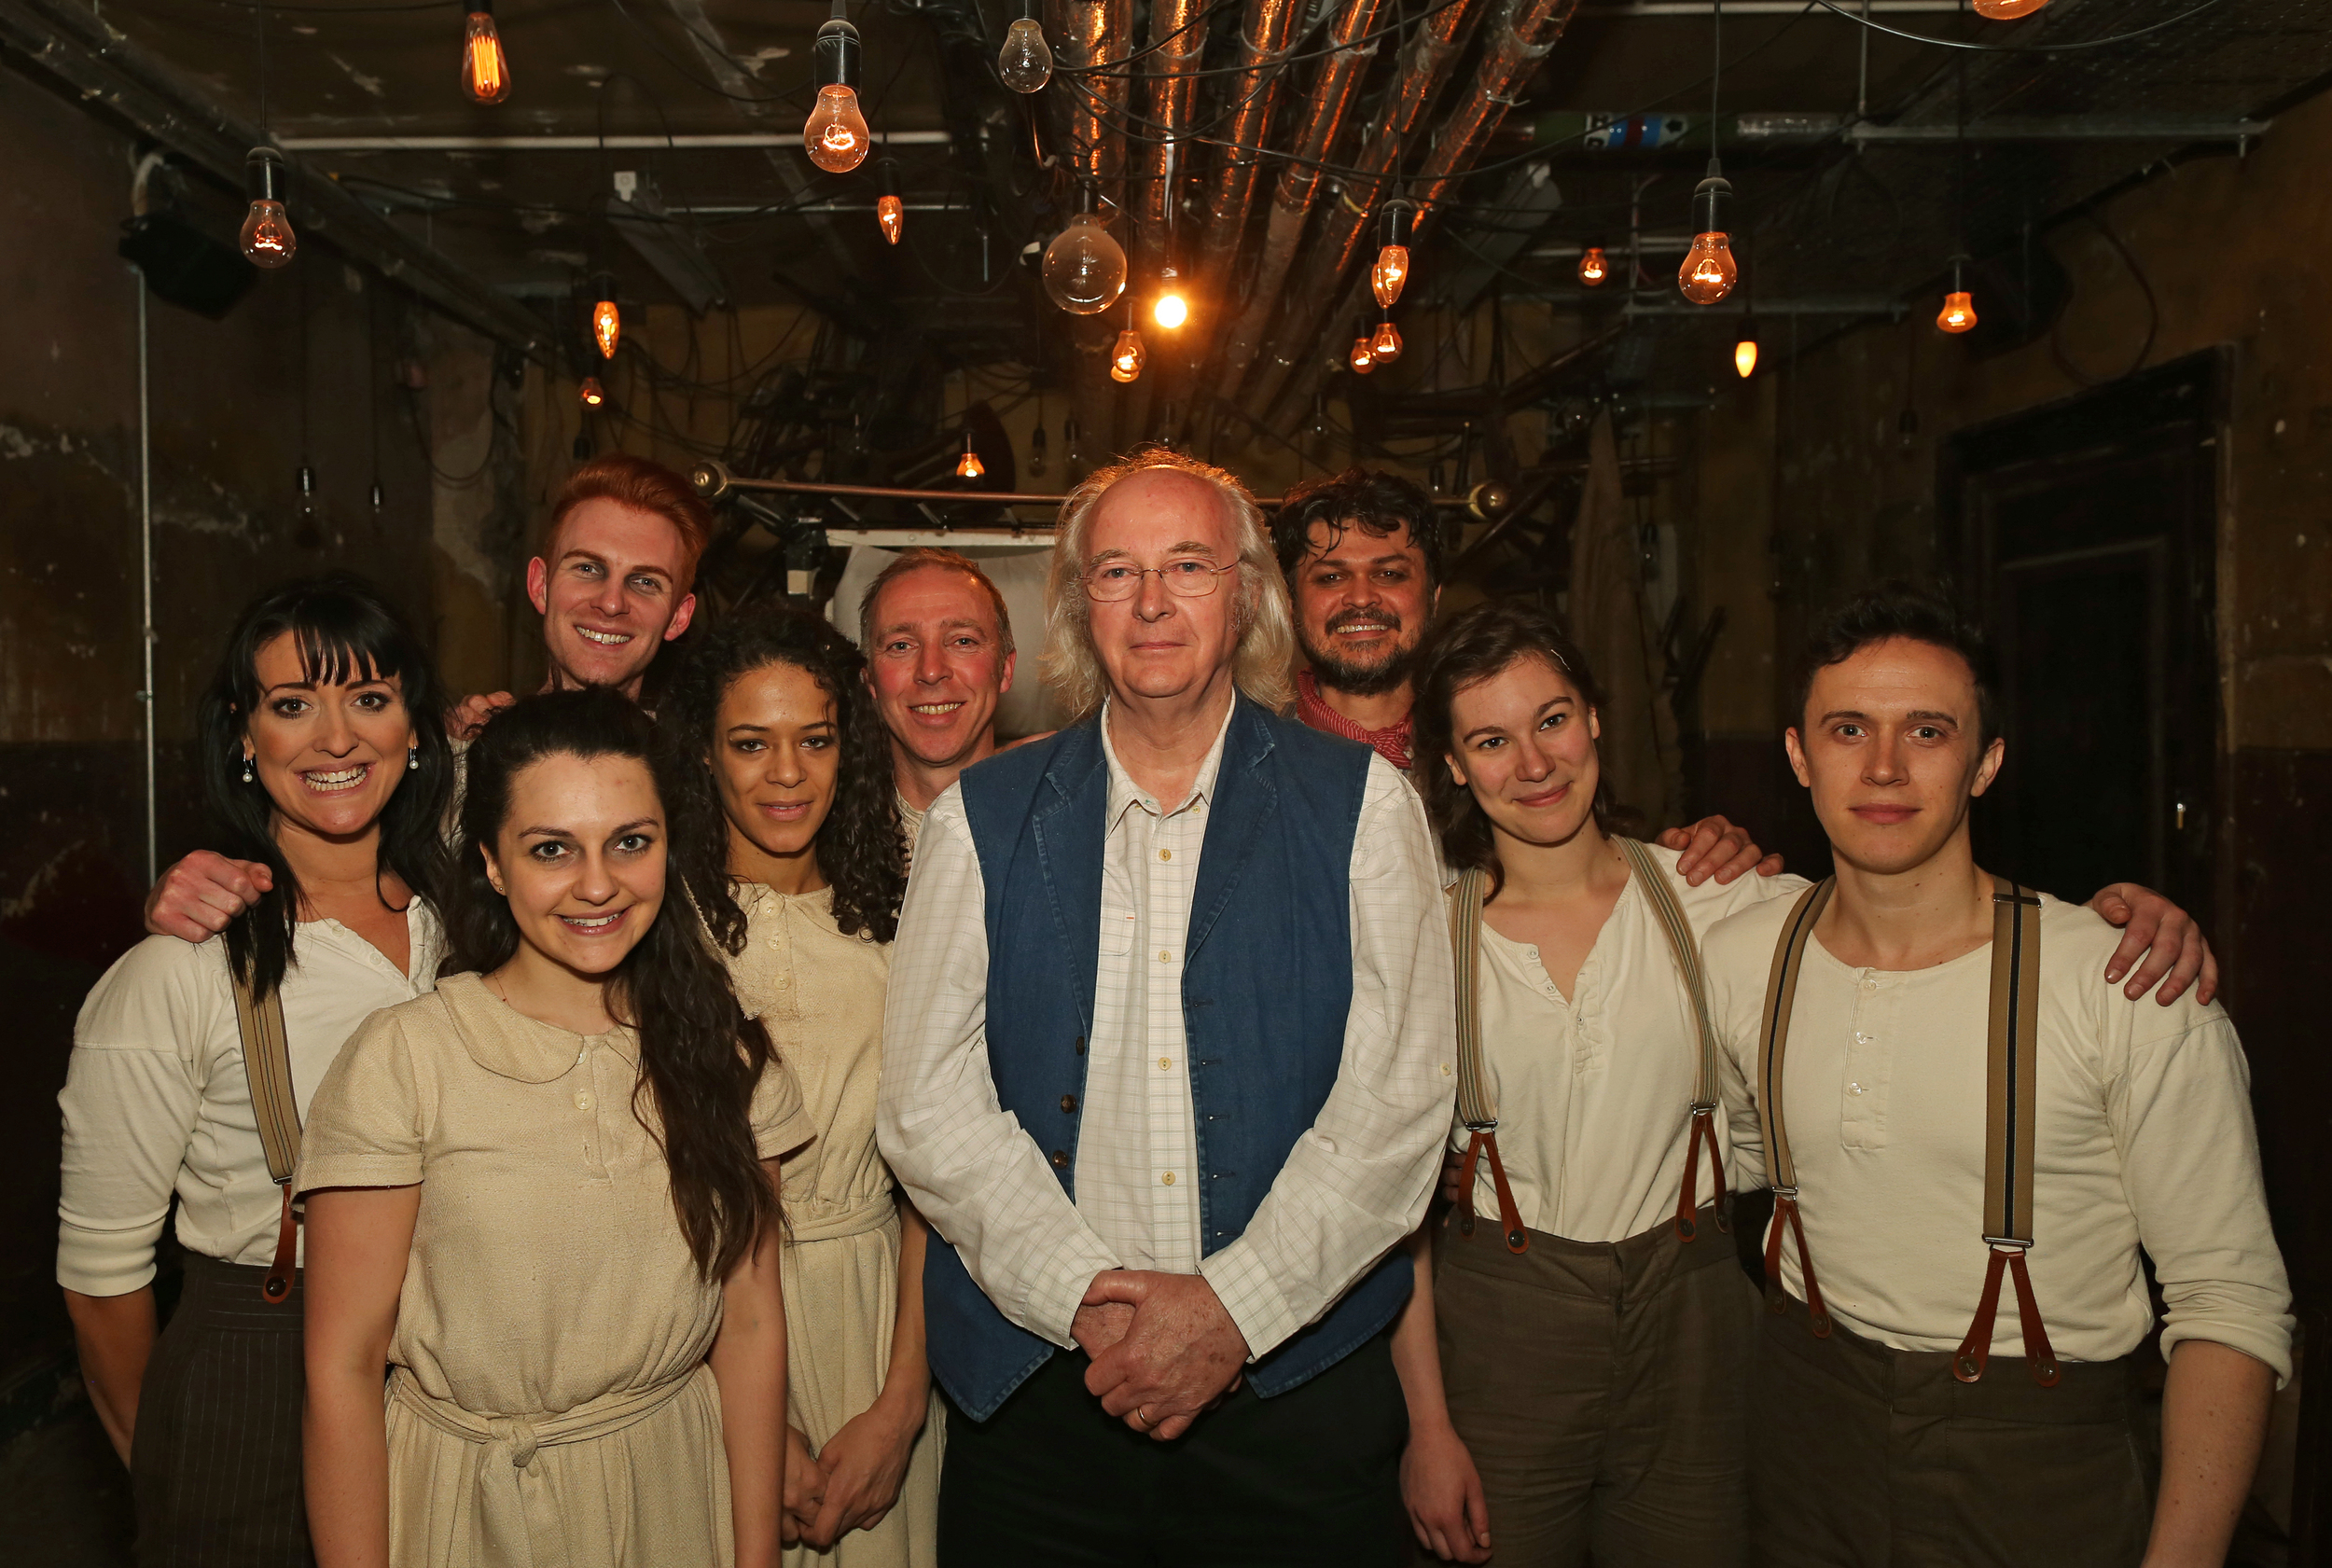 Philip Pullman (Author) & Cast